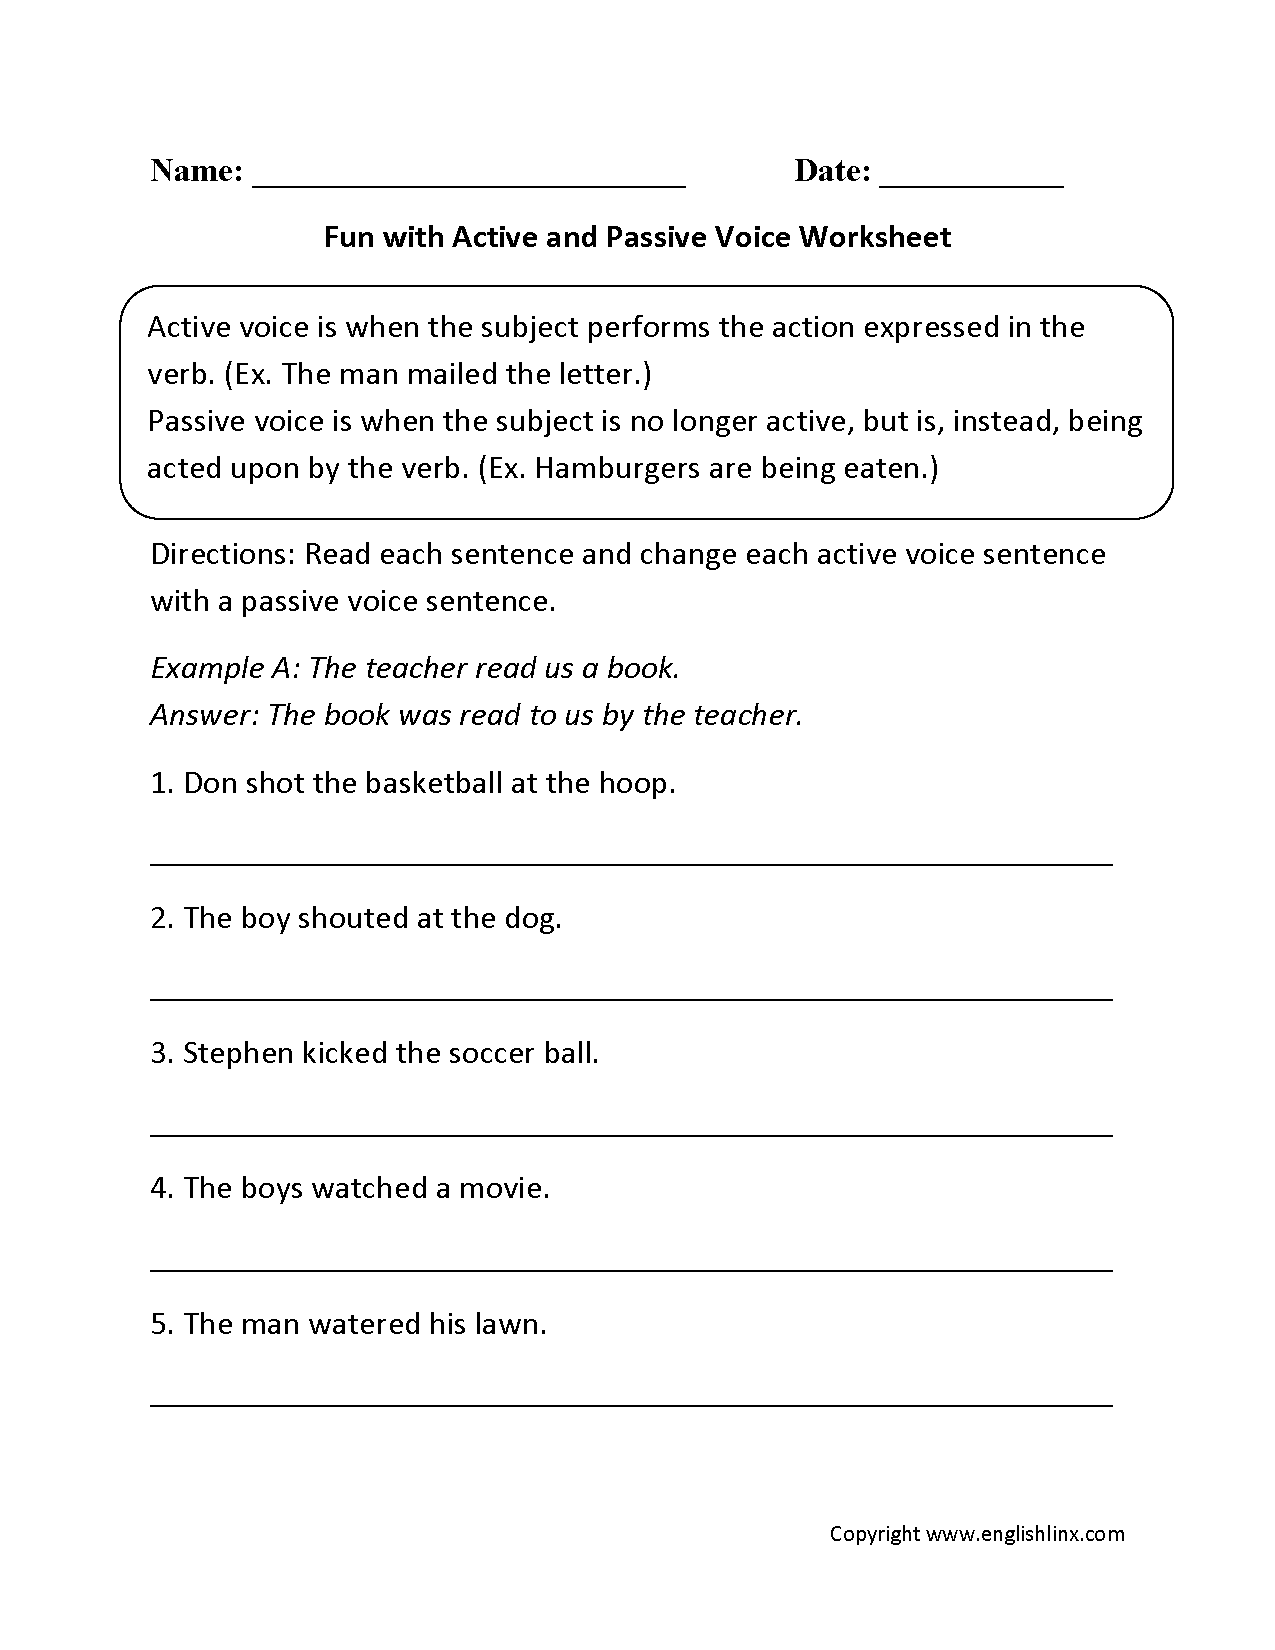 Worksheets Active And Passive Voice Worksheets With Answers englishlinx com active and passive voice worksheets worksheets